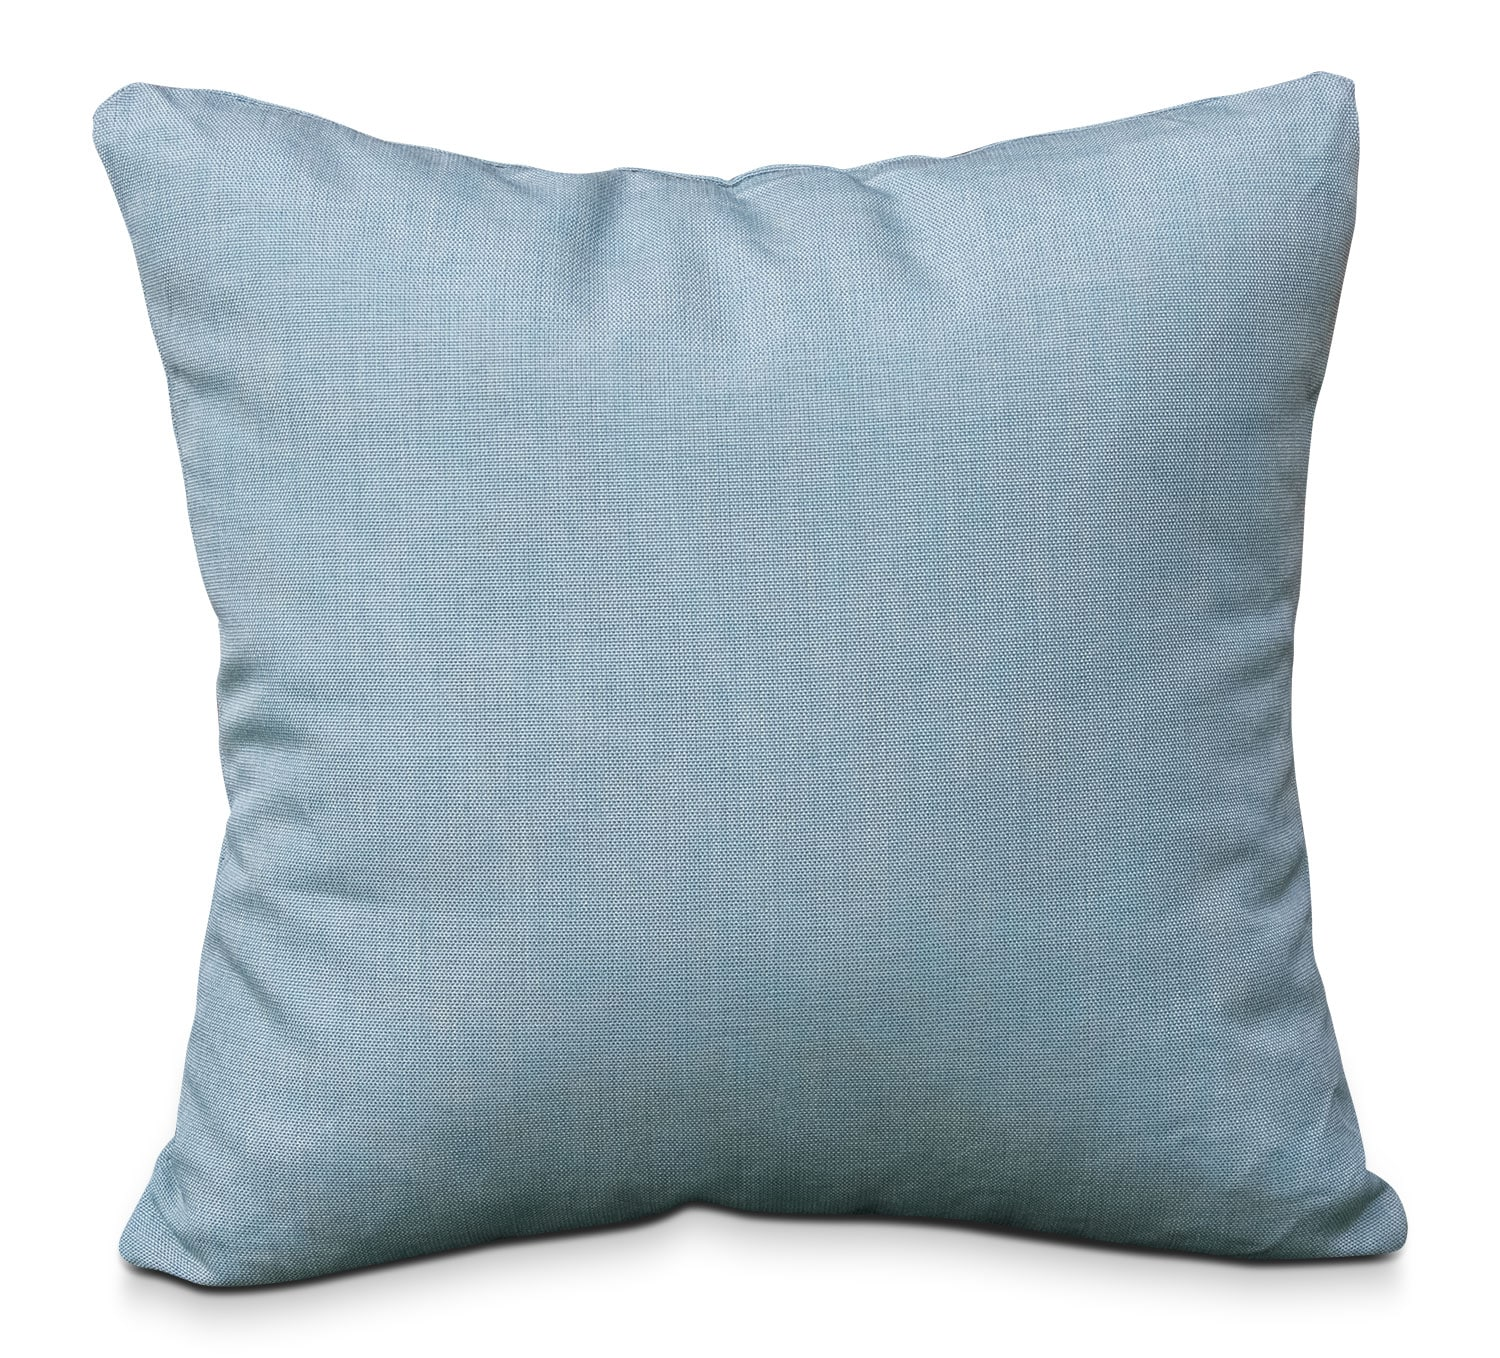 shaw square throw pillow blue  leon's - shaw square throw pillow blue